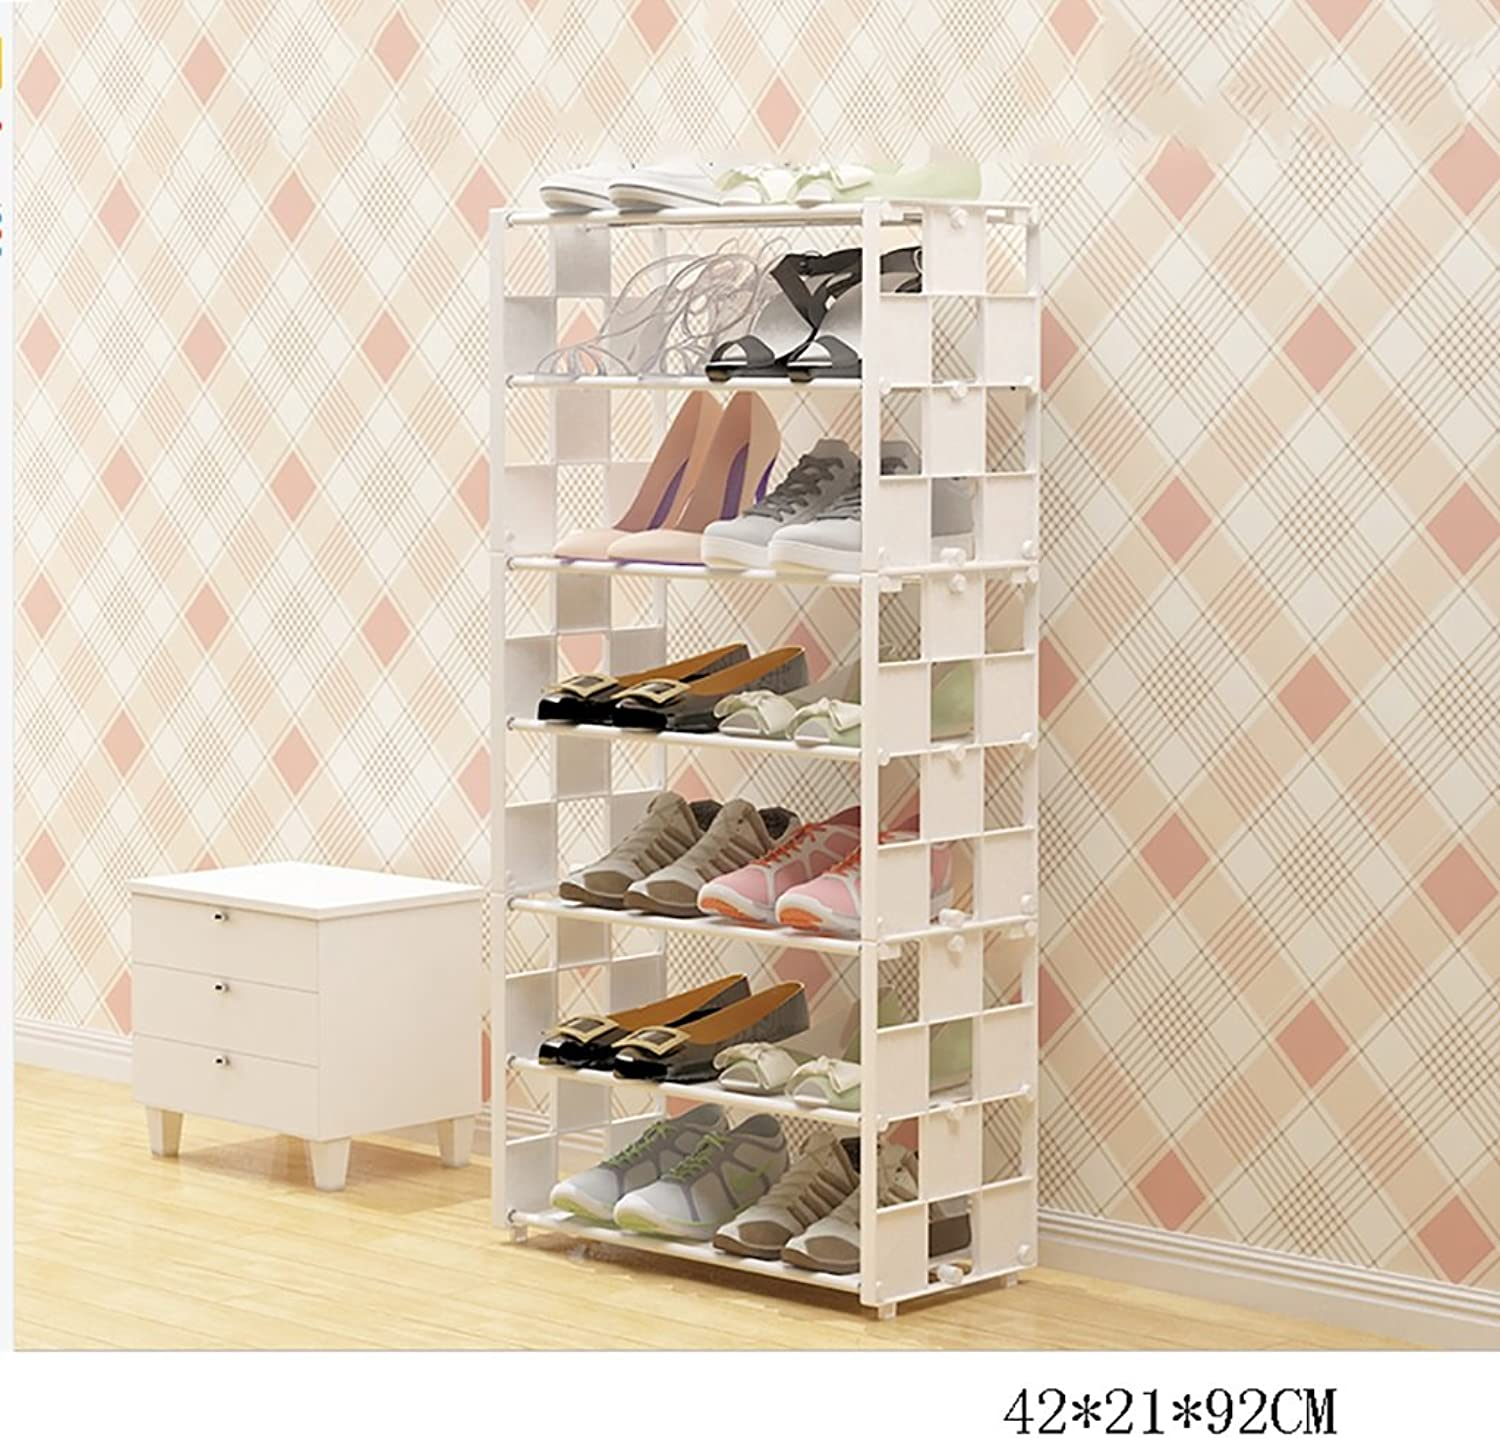 HHQ shoes Racks Multi-Layer Simple Assembly Economical Home Storage Dormitory Bedroom Space-Saving Function Modern Simple shoes Cabinet (color   2)